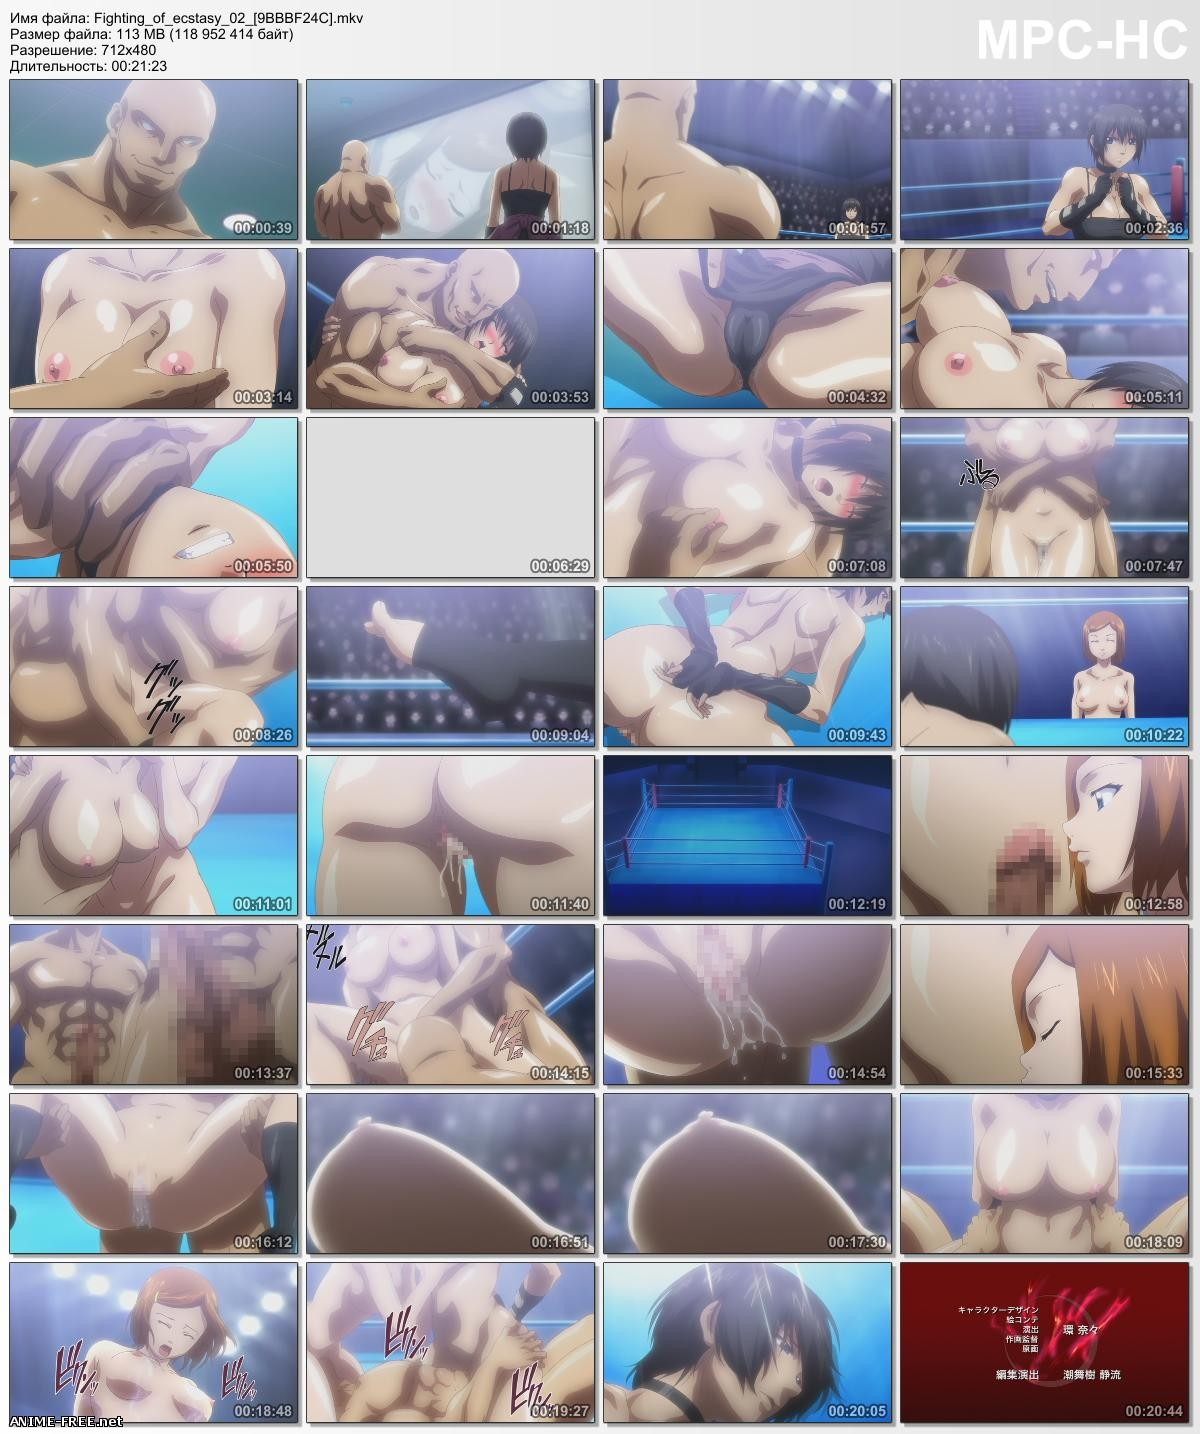 Экстаз борьбы / Fighting of Ecstasy [2 из 2] [RUS,ENG,JAP,GER] Anime Hentai